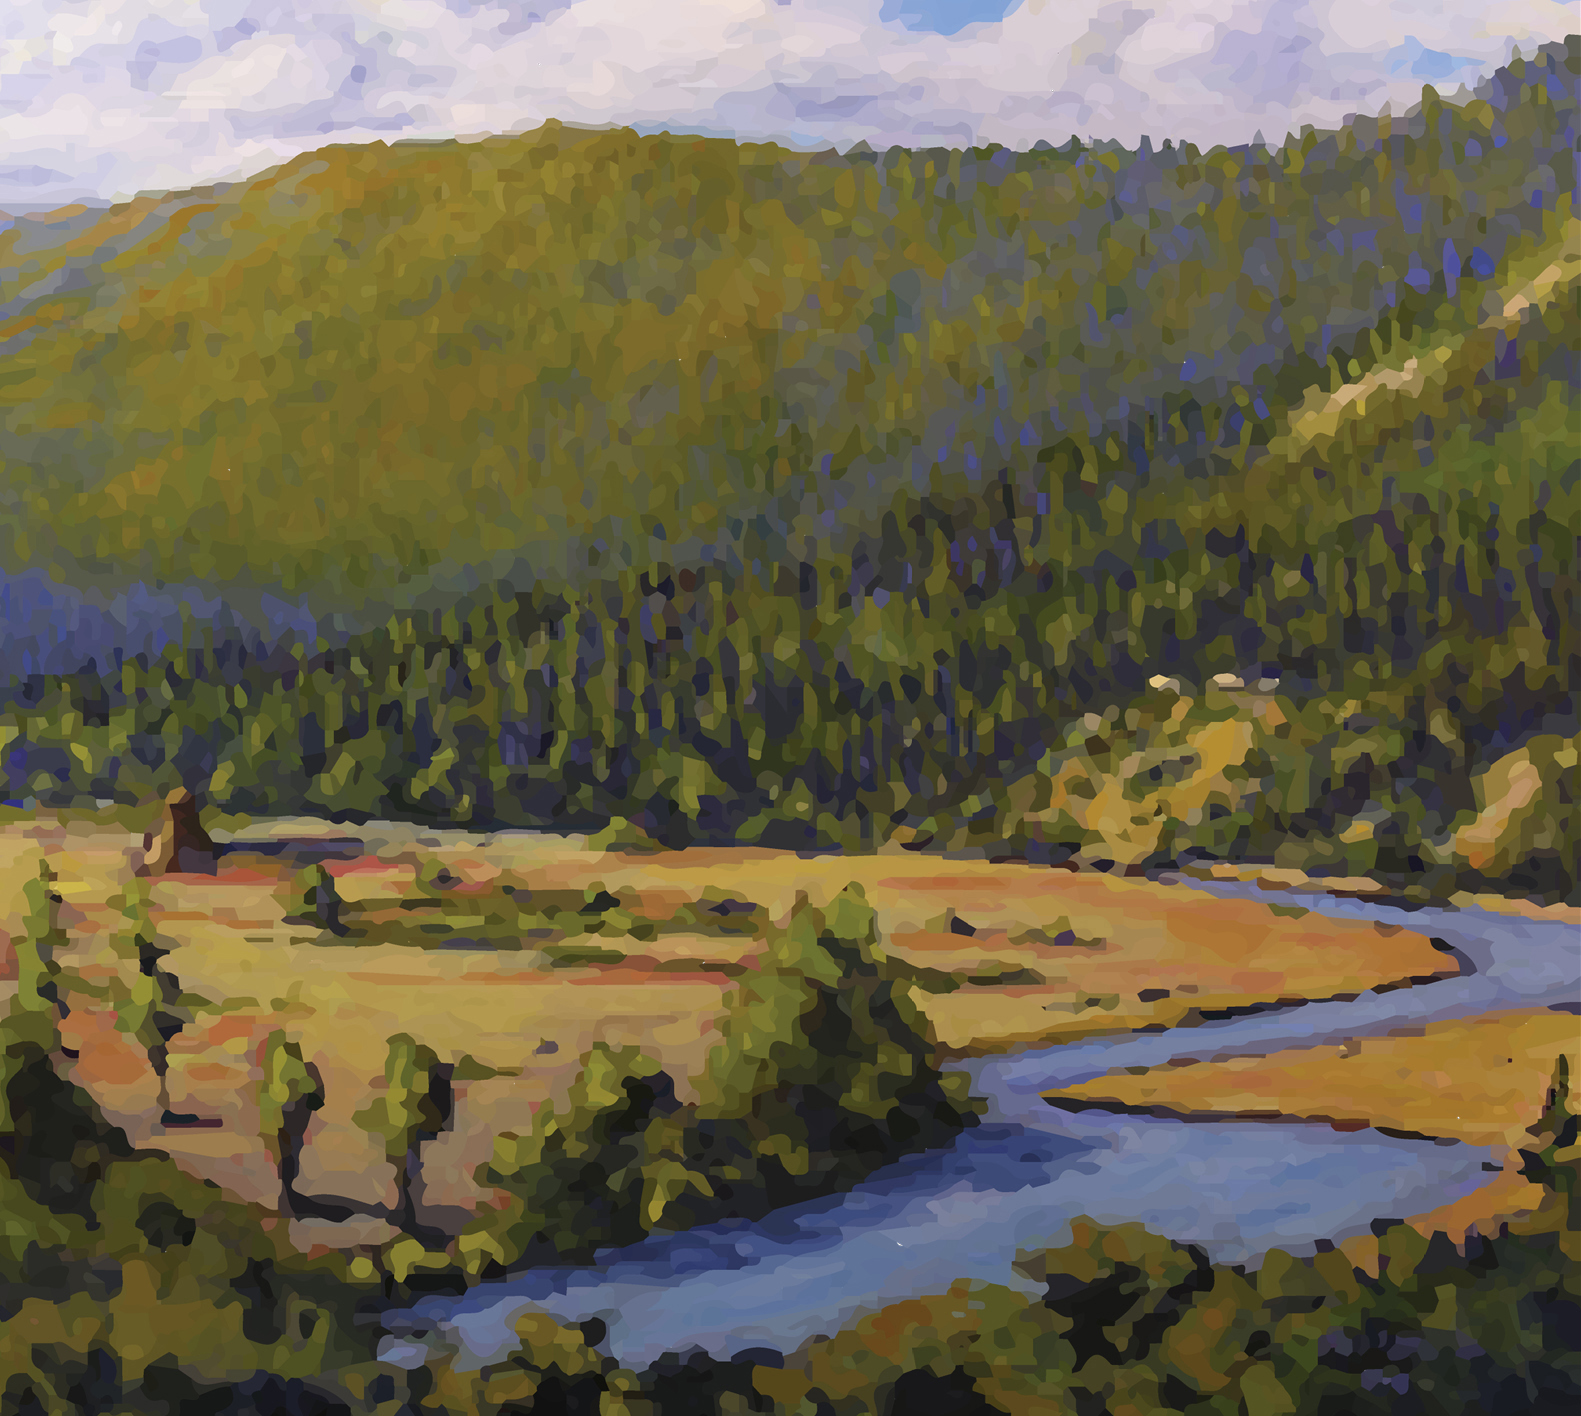 painting of mountains and river by Randle Panfilio